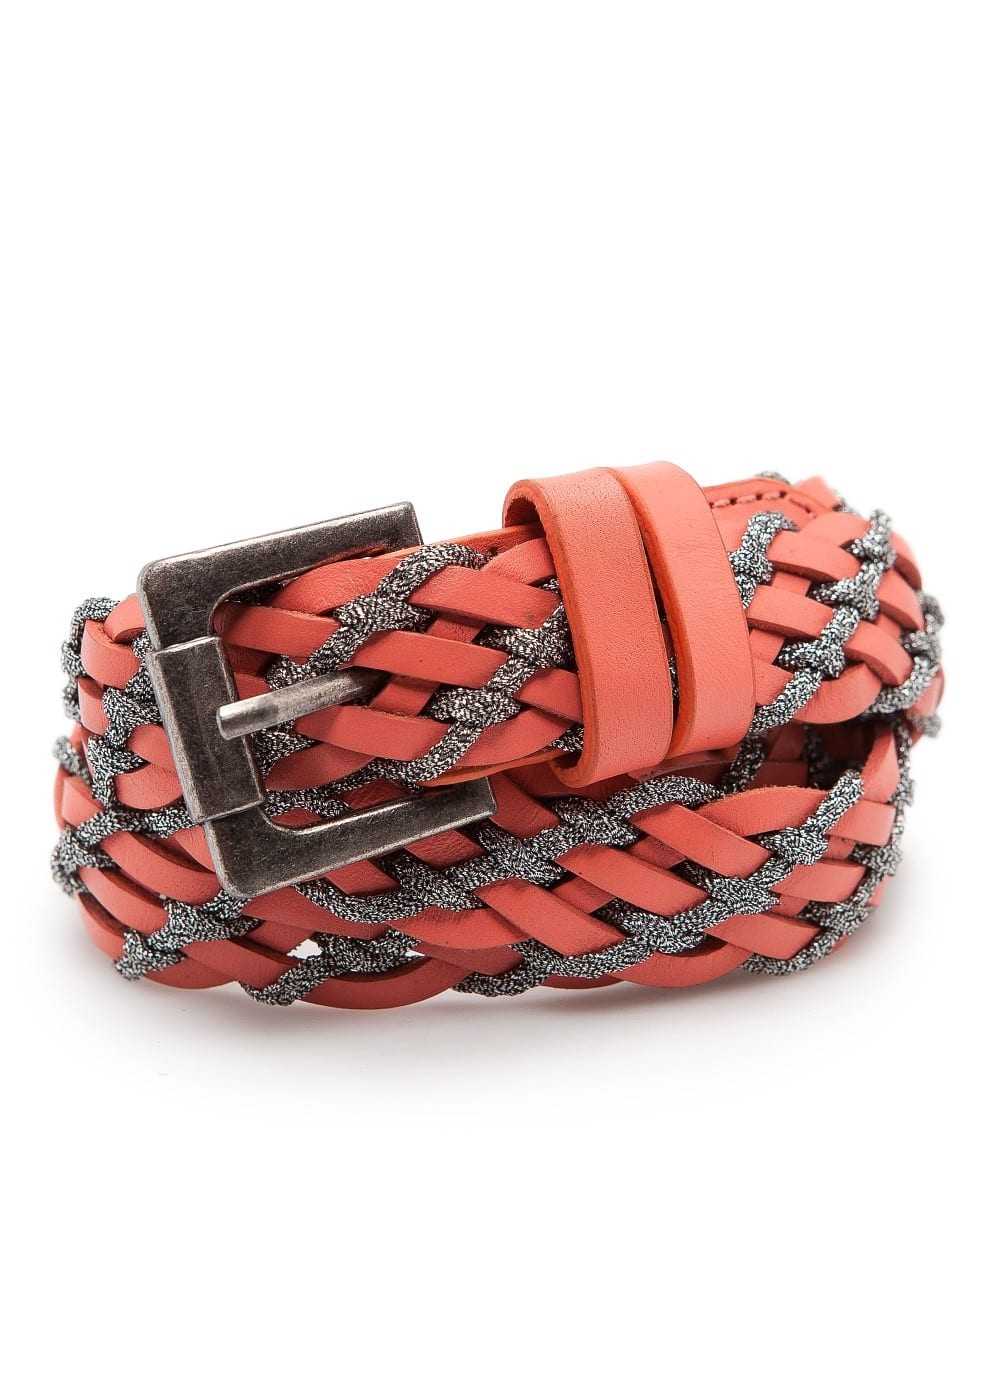 Metallic braided leather belt - Woman   MANGO São Tomé and Príncipe 87d742ac3f3